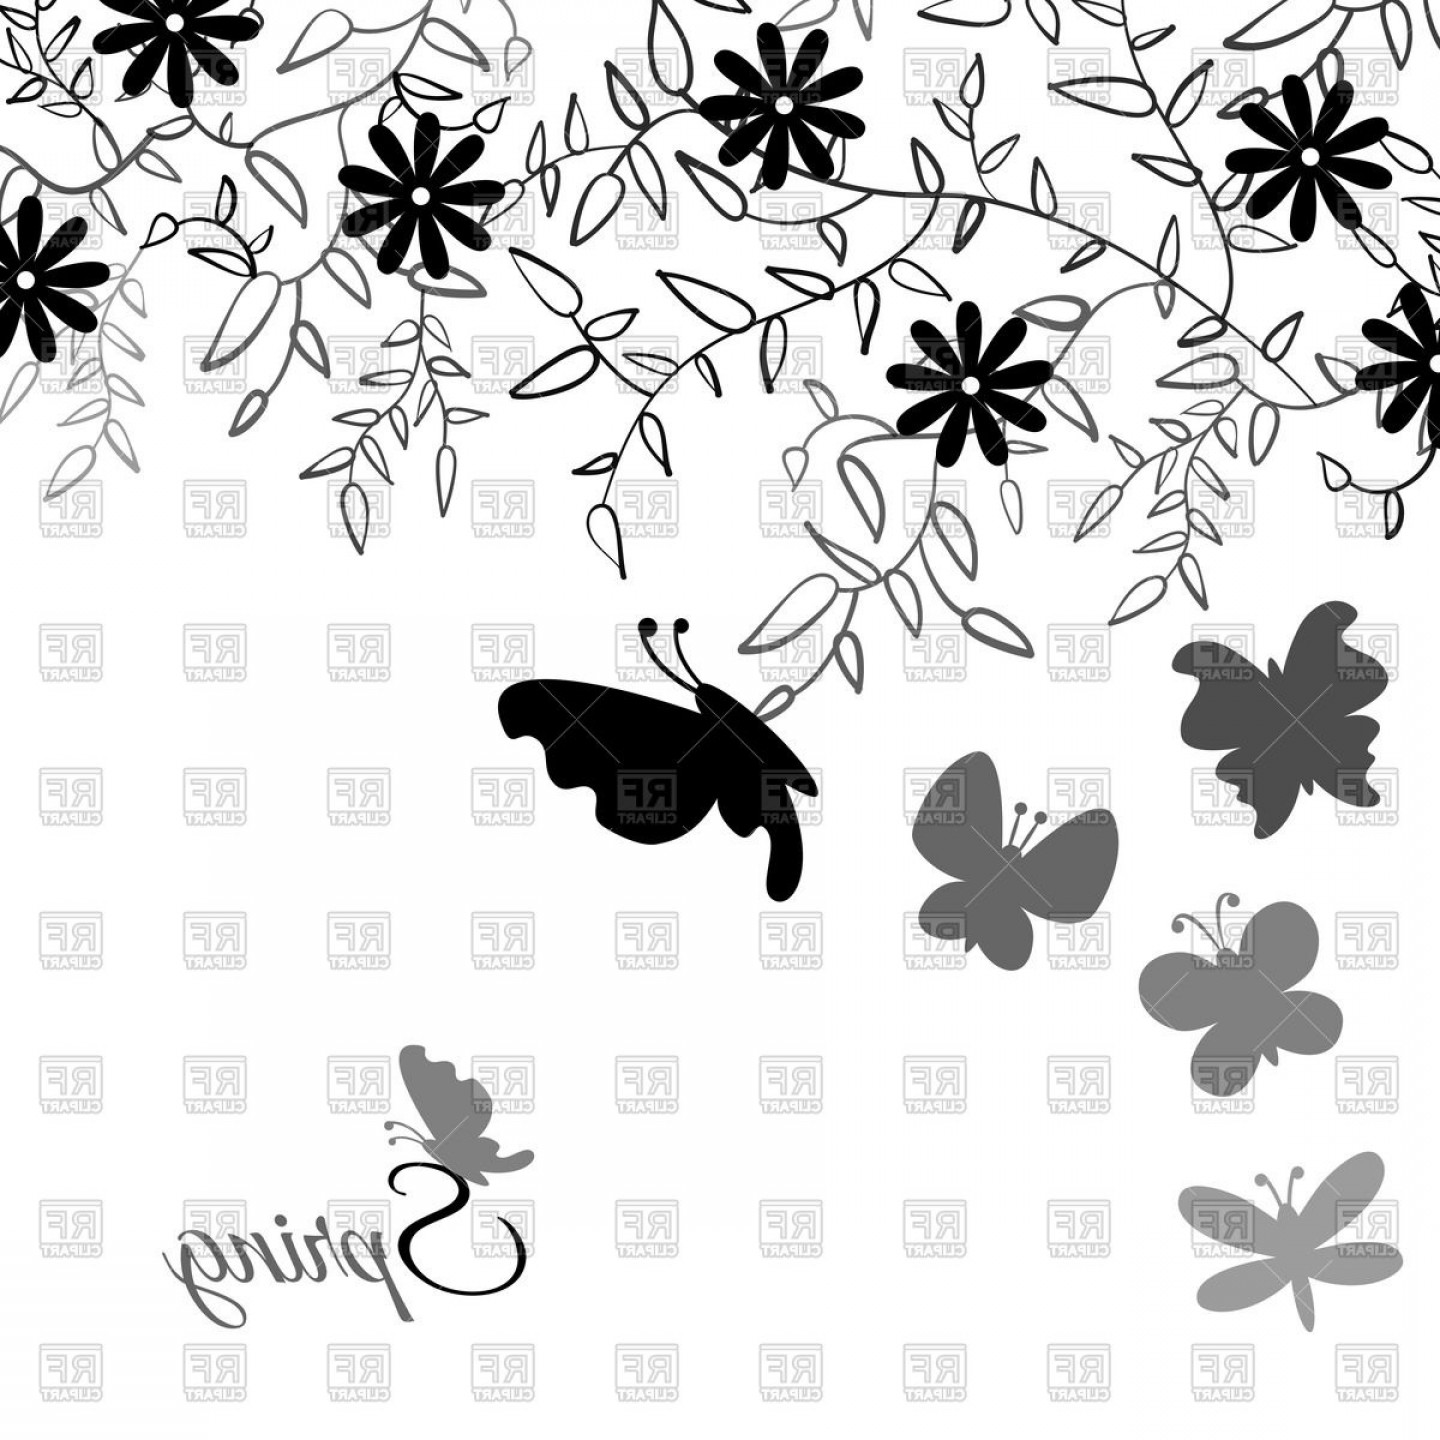 Butter Fly And Flower Vector Black And White: Cute Flower And Butterflies Floral Black Background Vector Clipart